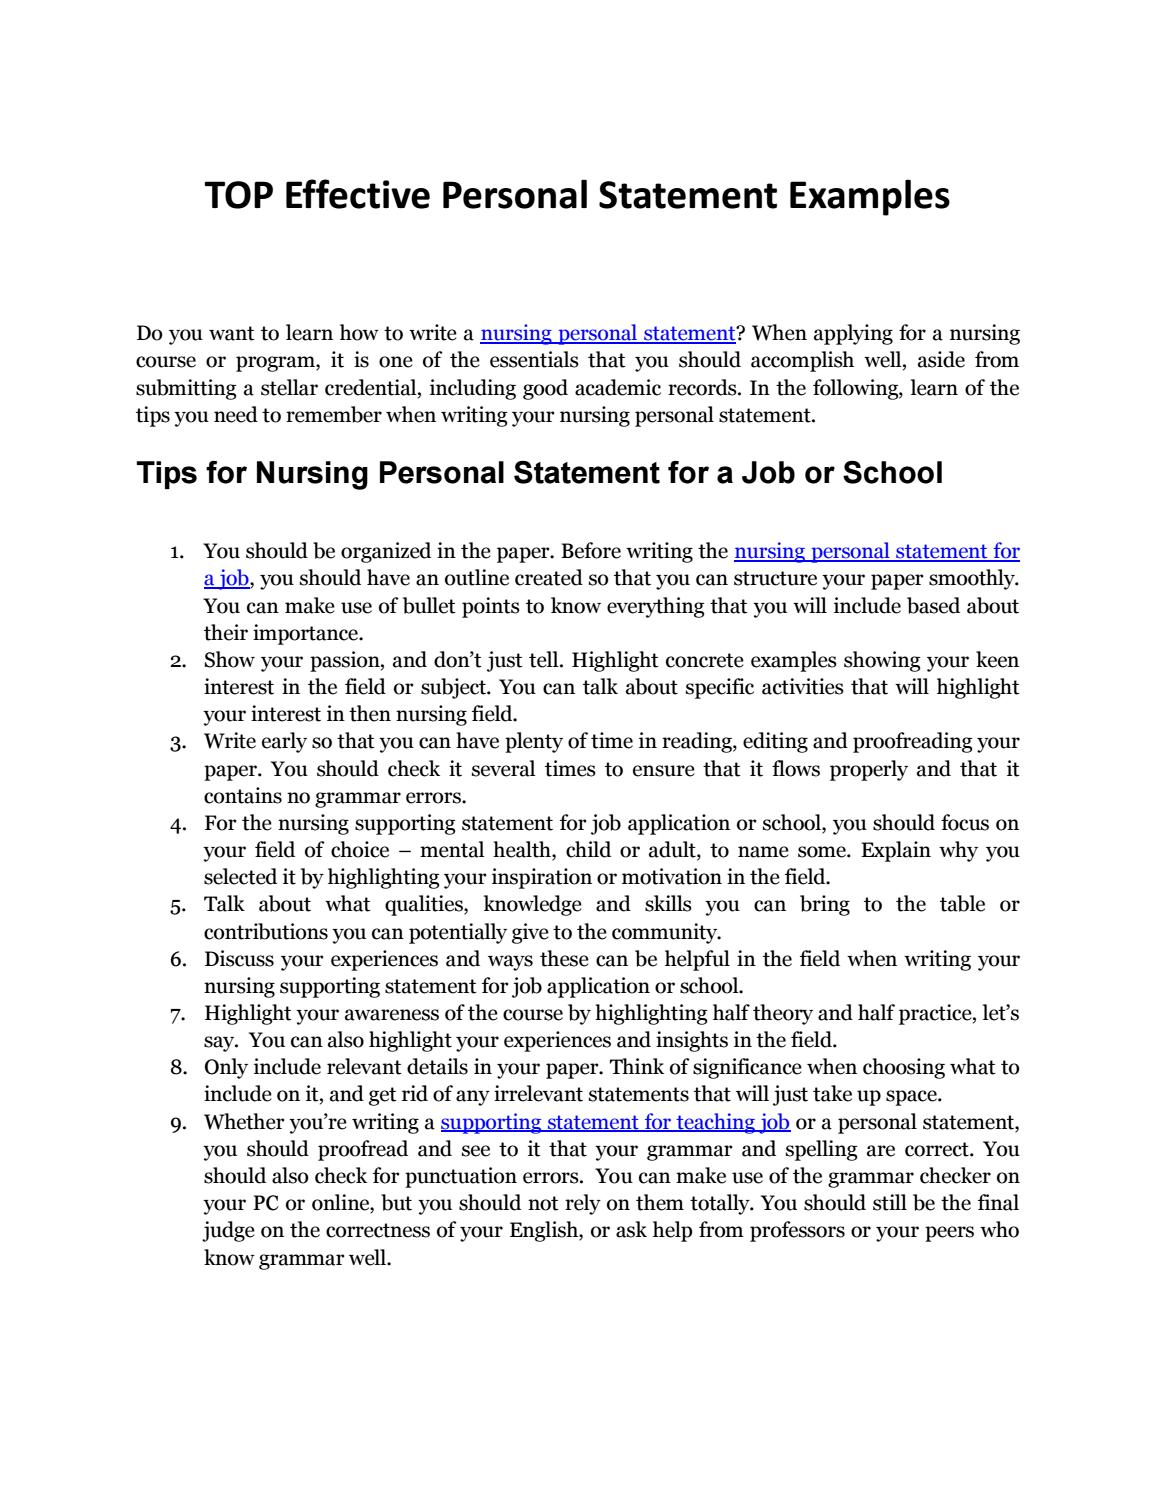 Nursing Personal Statement Tips And Samples In Writing By